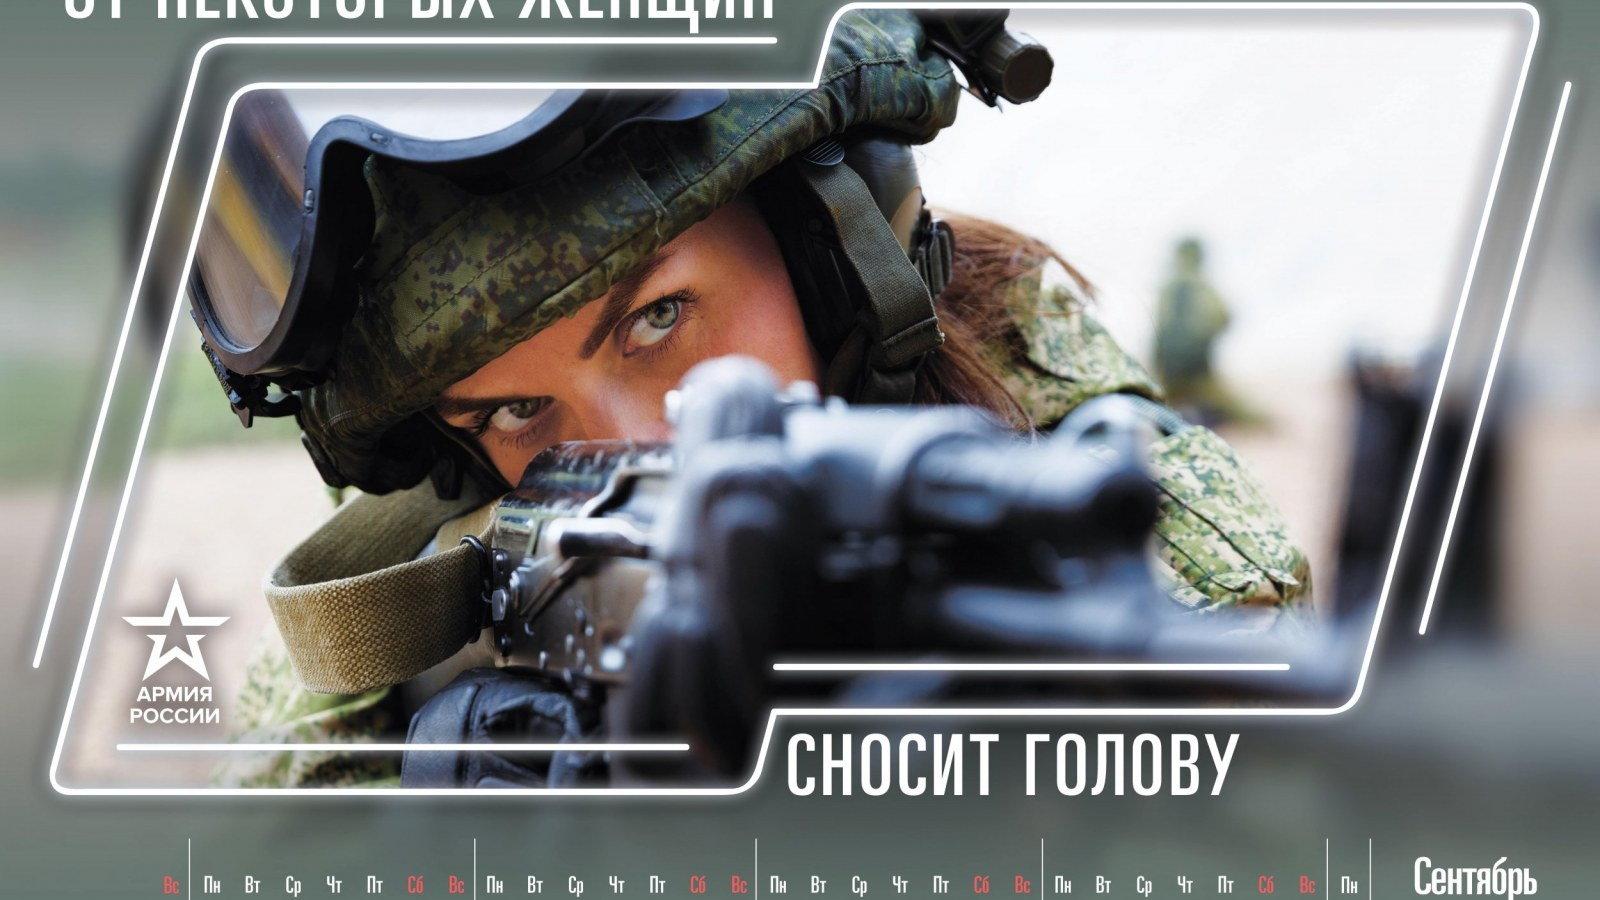 Russia Shows Off Military Might in 2019 Calendar Photos With Guns